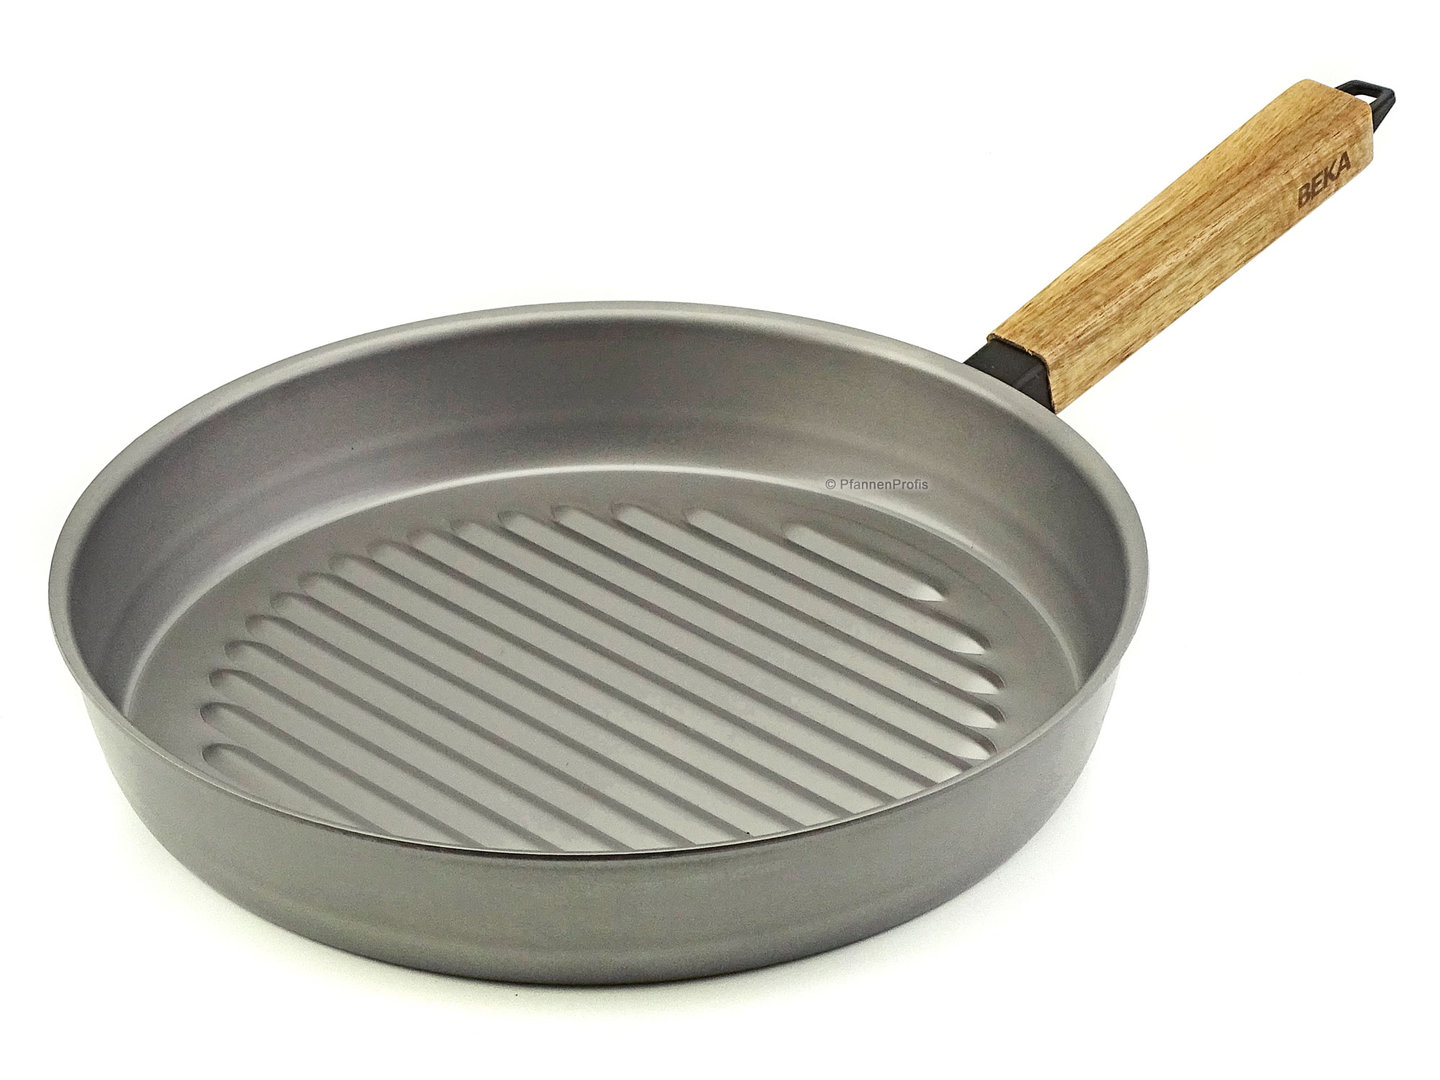 BEKA grill pan NOMAD 28 cm carbon steel frypan with acacia wood handle